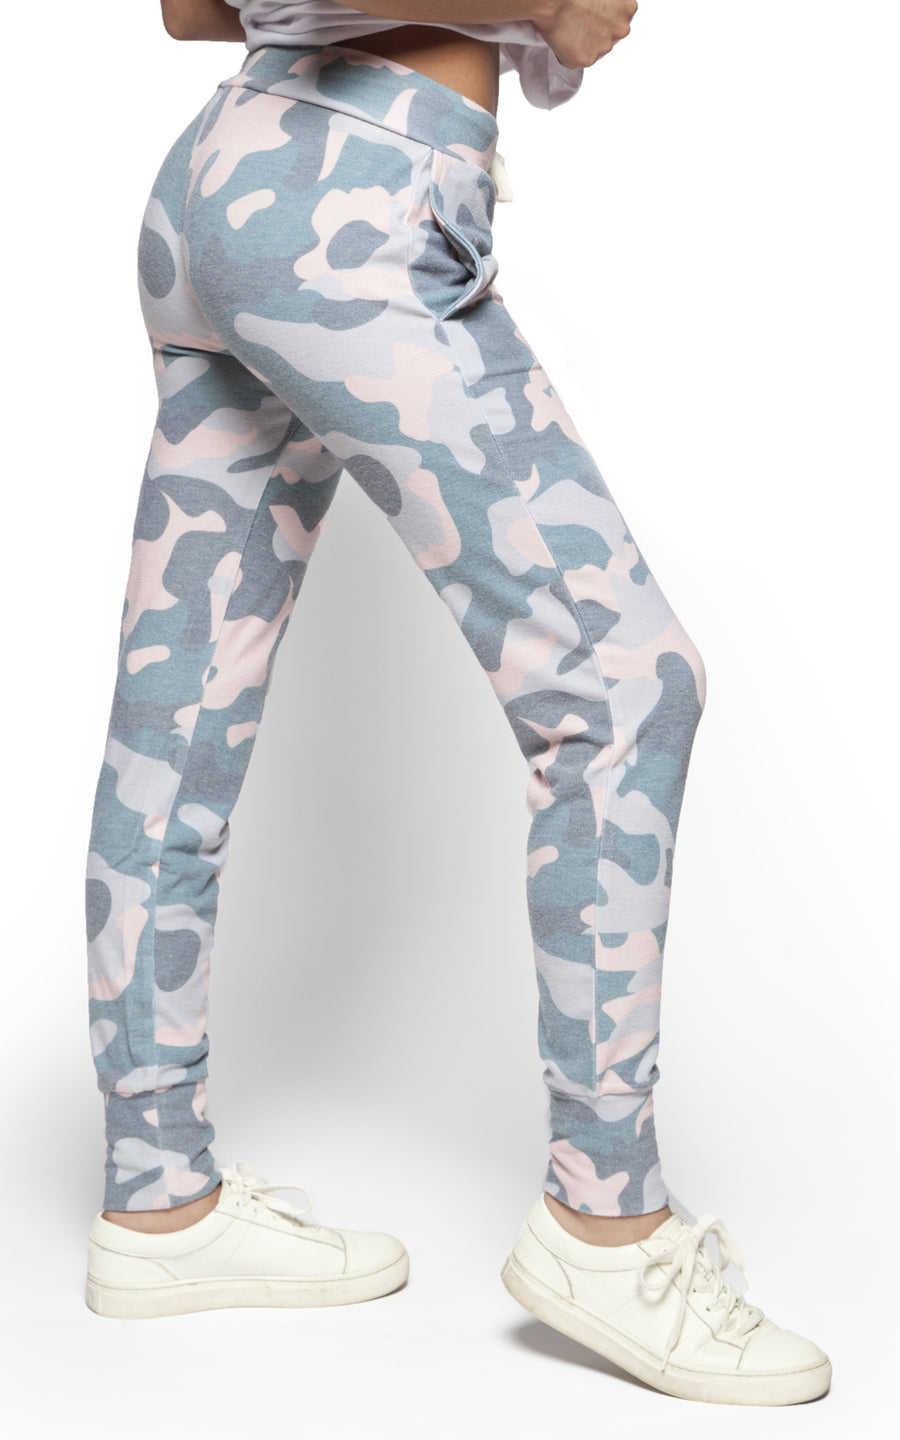 JOGGER IN PEACE TRAIN CAMO